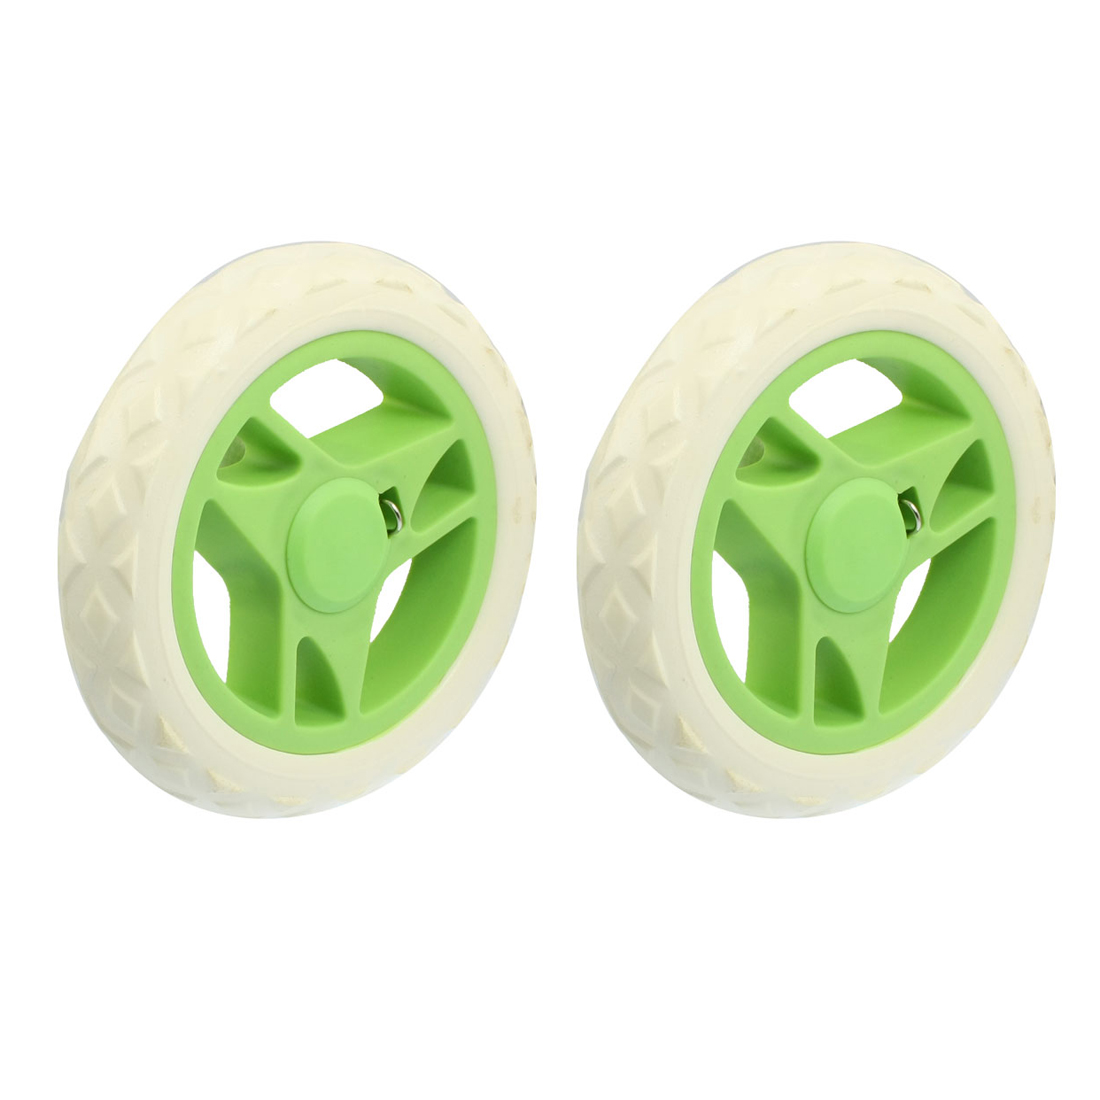 2 Pcs Replaceable Shopping Trolley Travelling Cart Wheels White Green